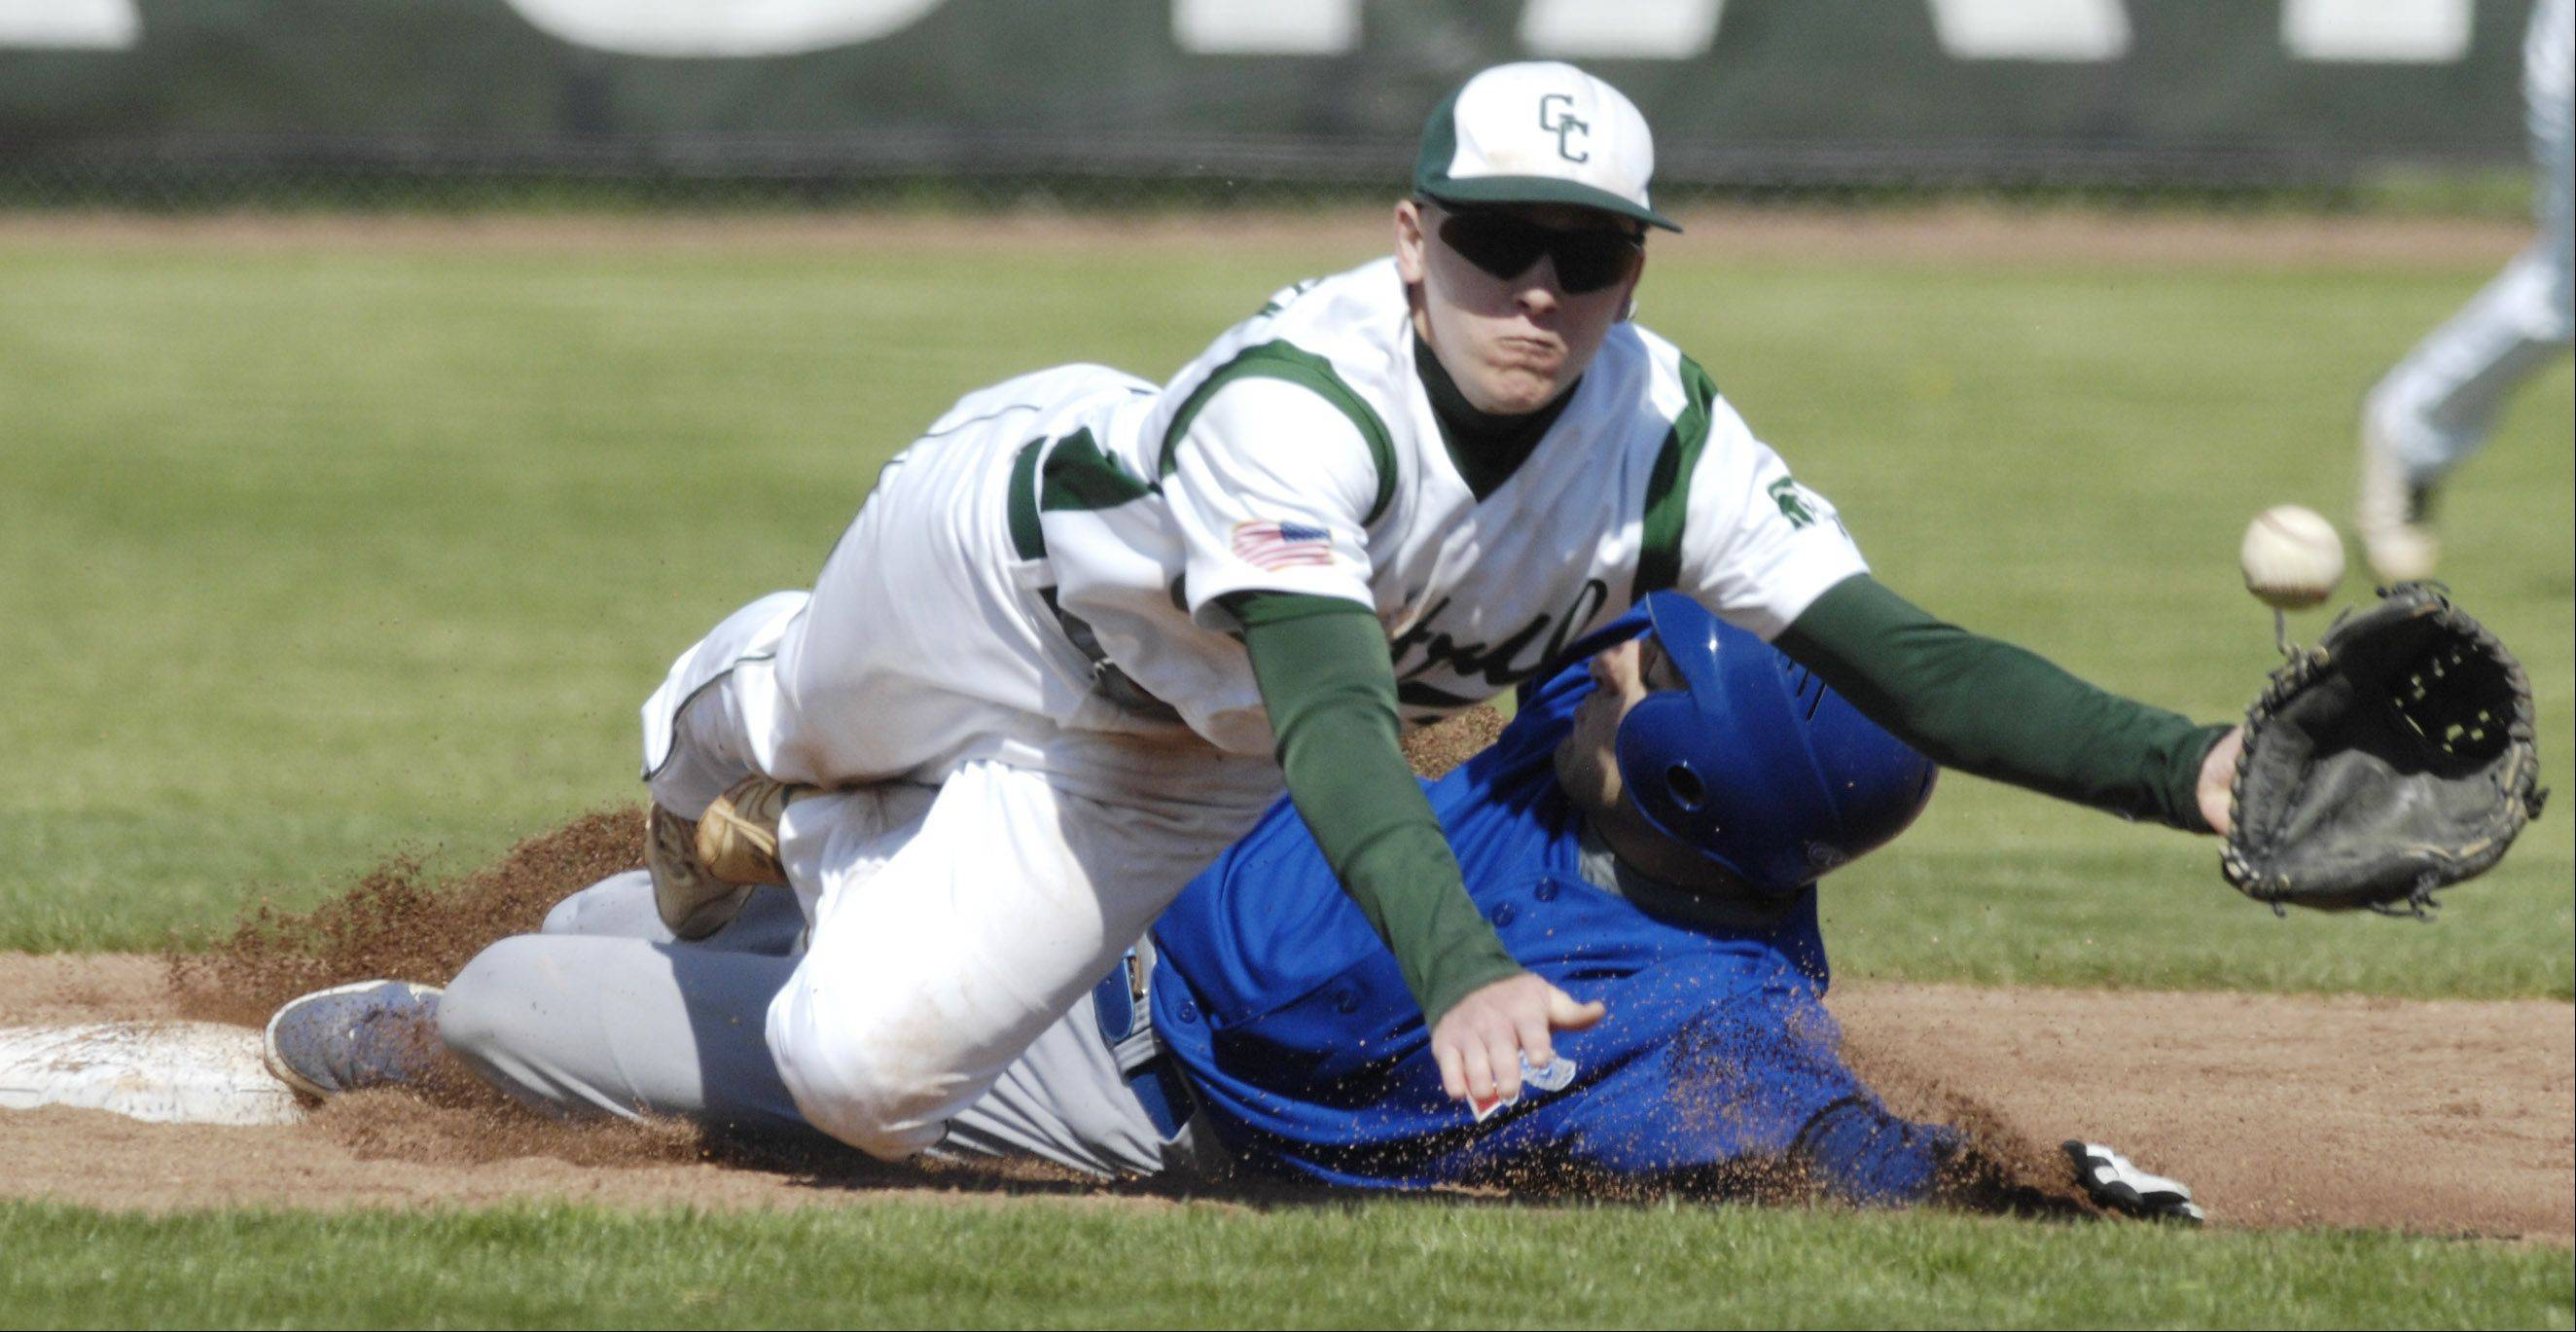 Graylake Central's Jay Kleinofen dives for the ball during Saturday's baseball game against Lakes.